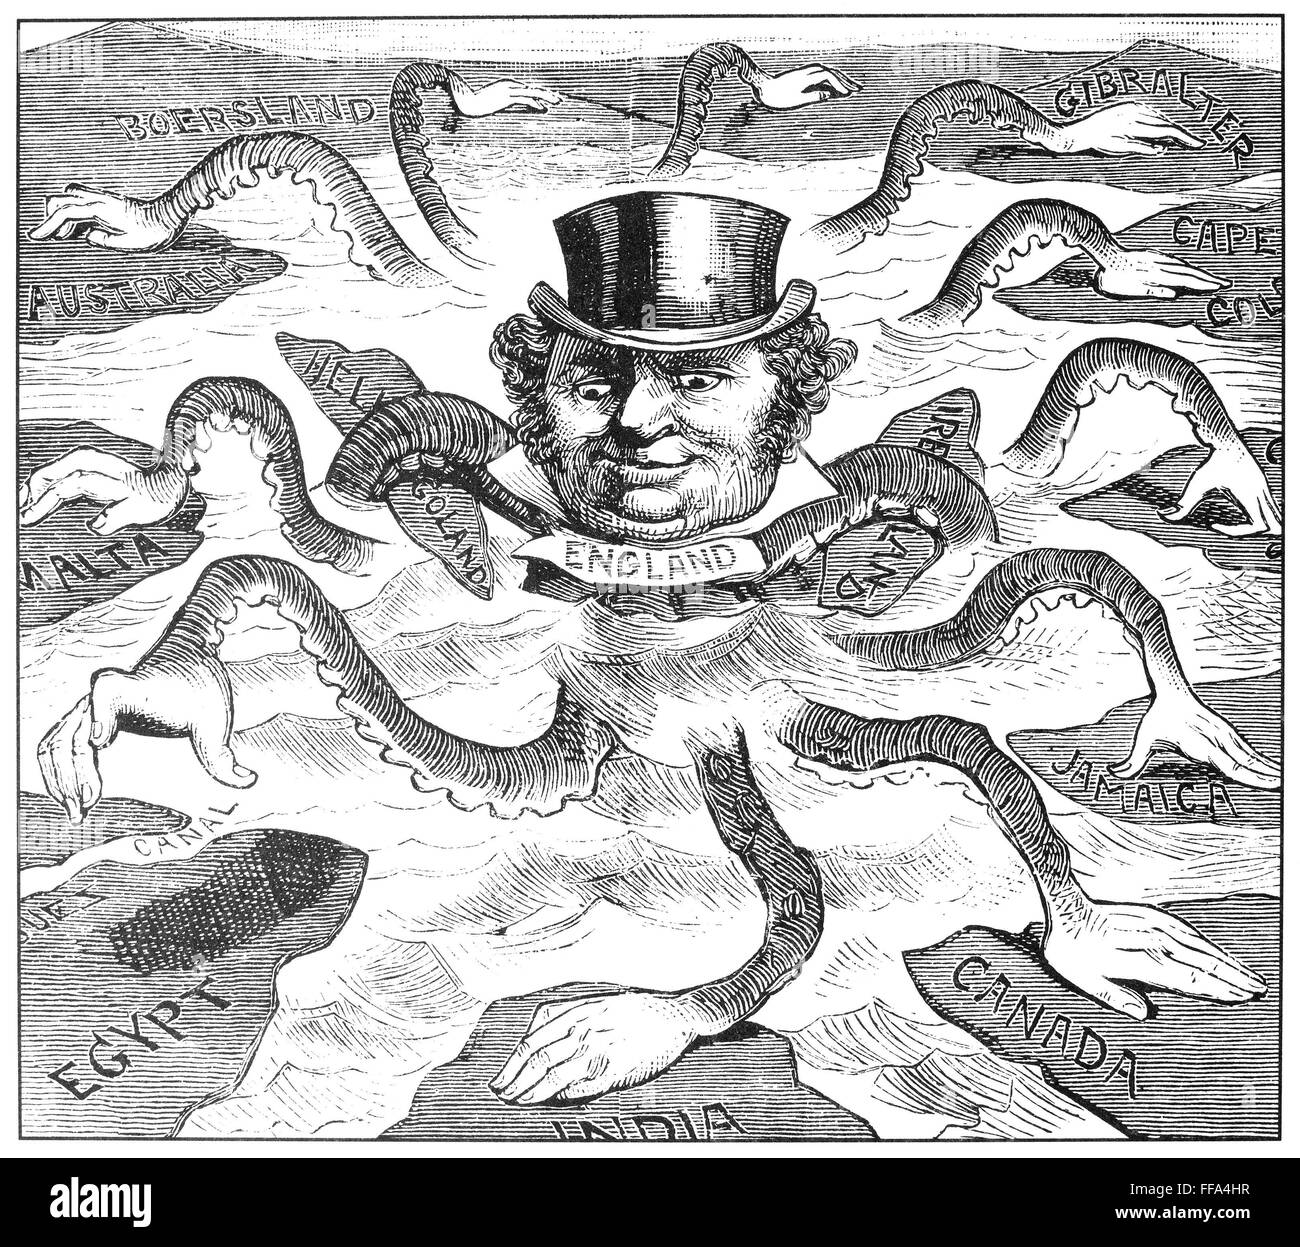 An American cartoon from 1882 depicting John Bull (England) as the octopus  of imperialism grabbing land on every continent. 1f308329129d